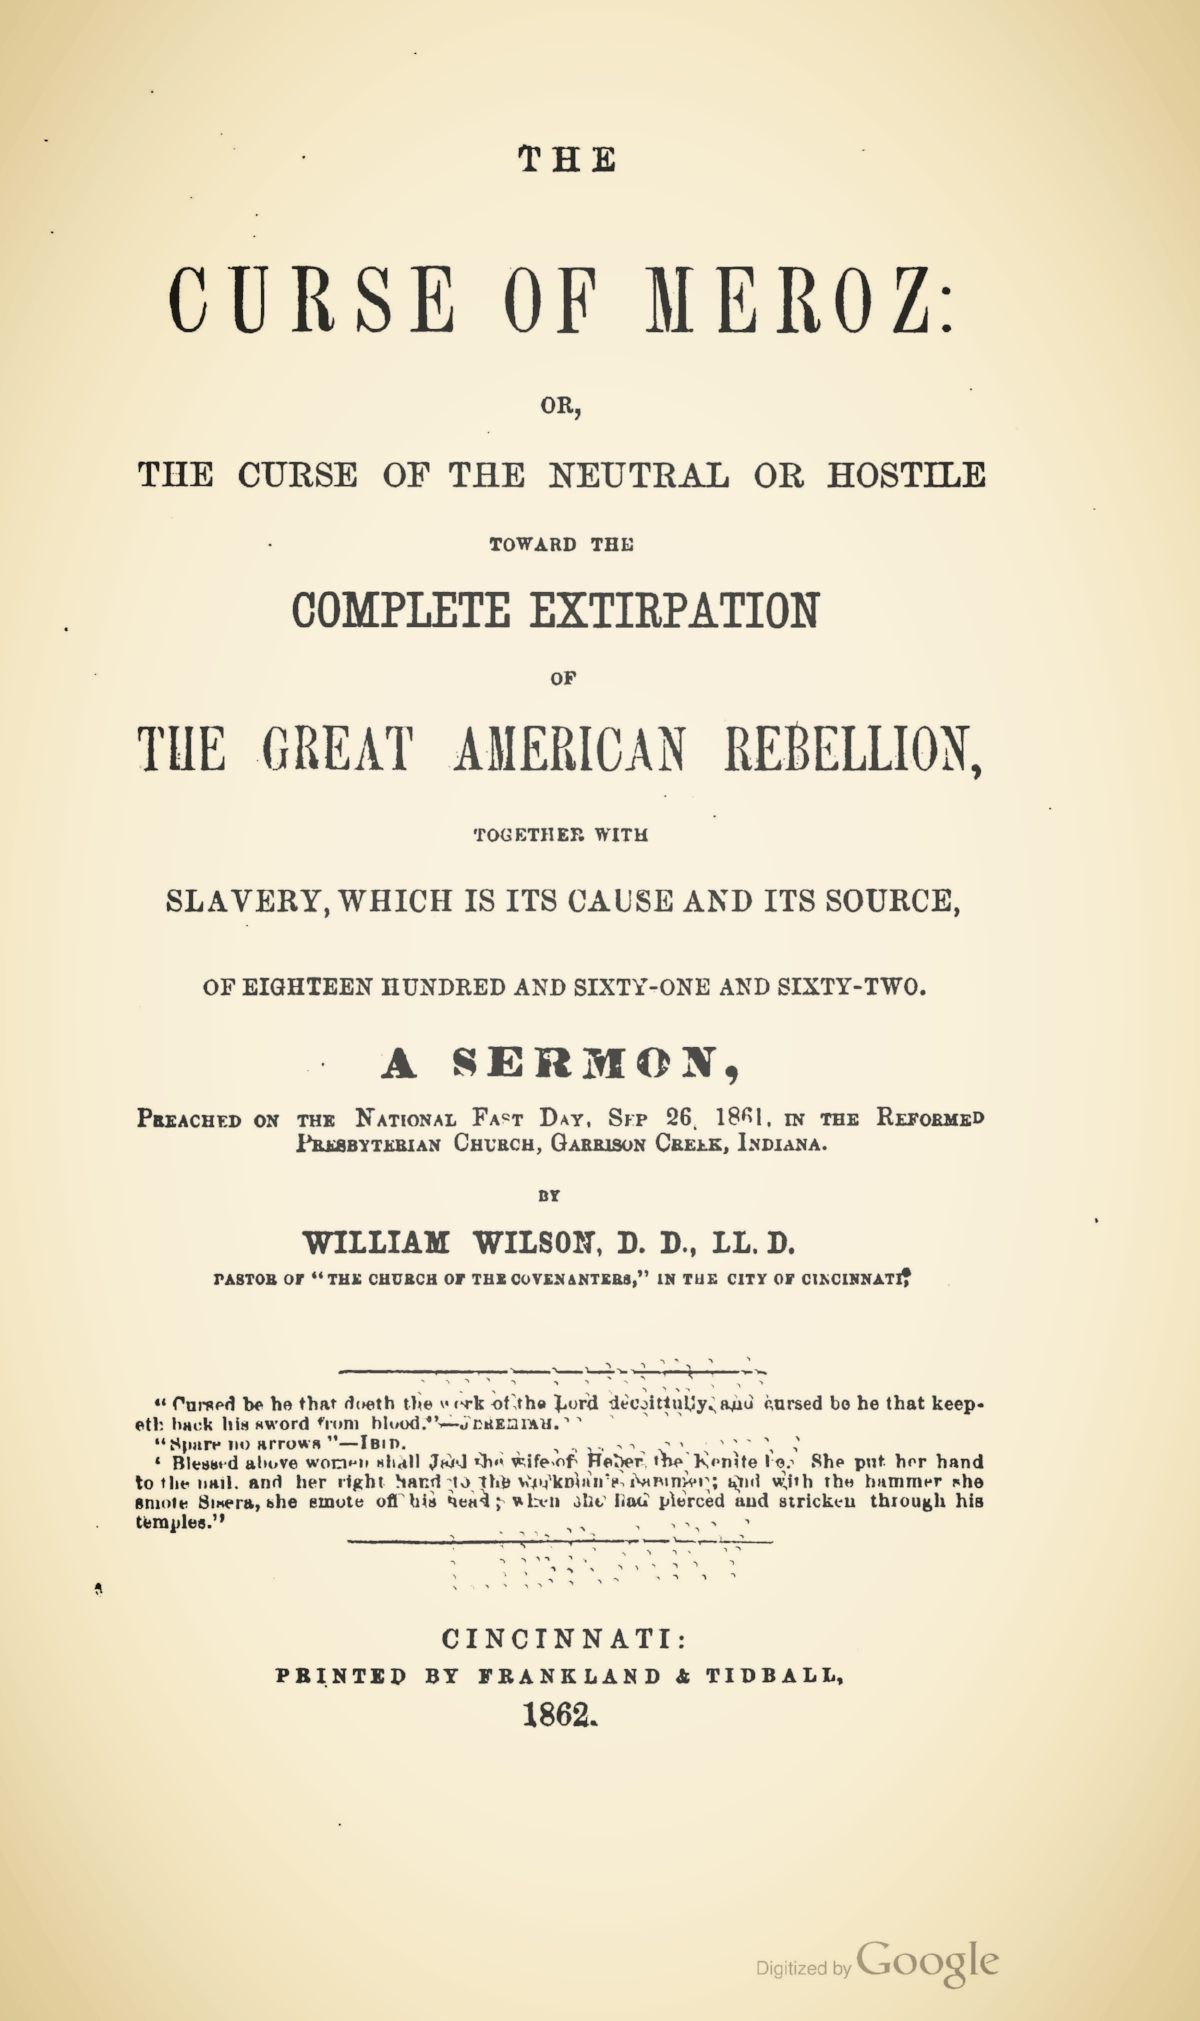 Wilson, William, The Curse of Meroz Title Page.jpg